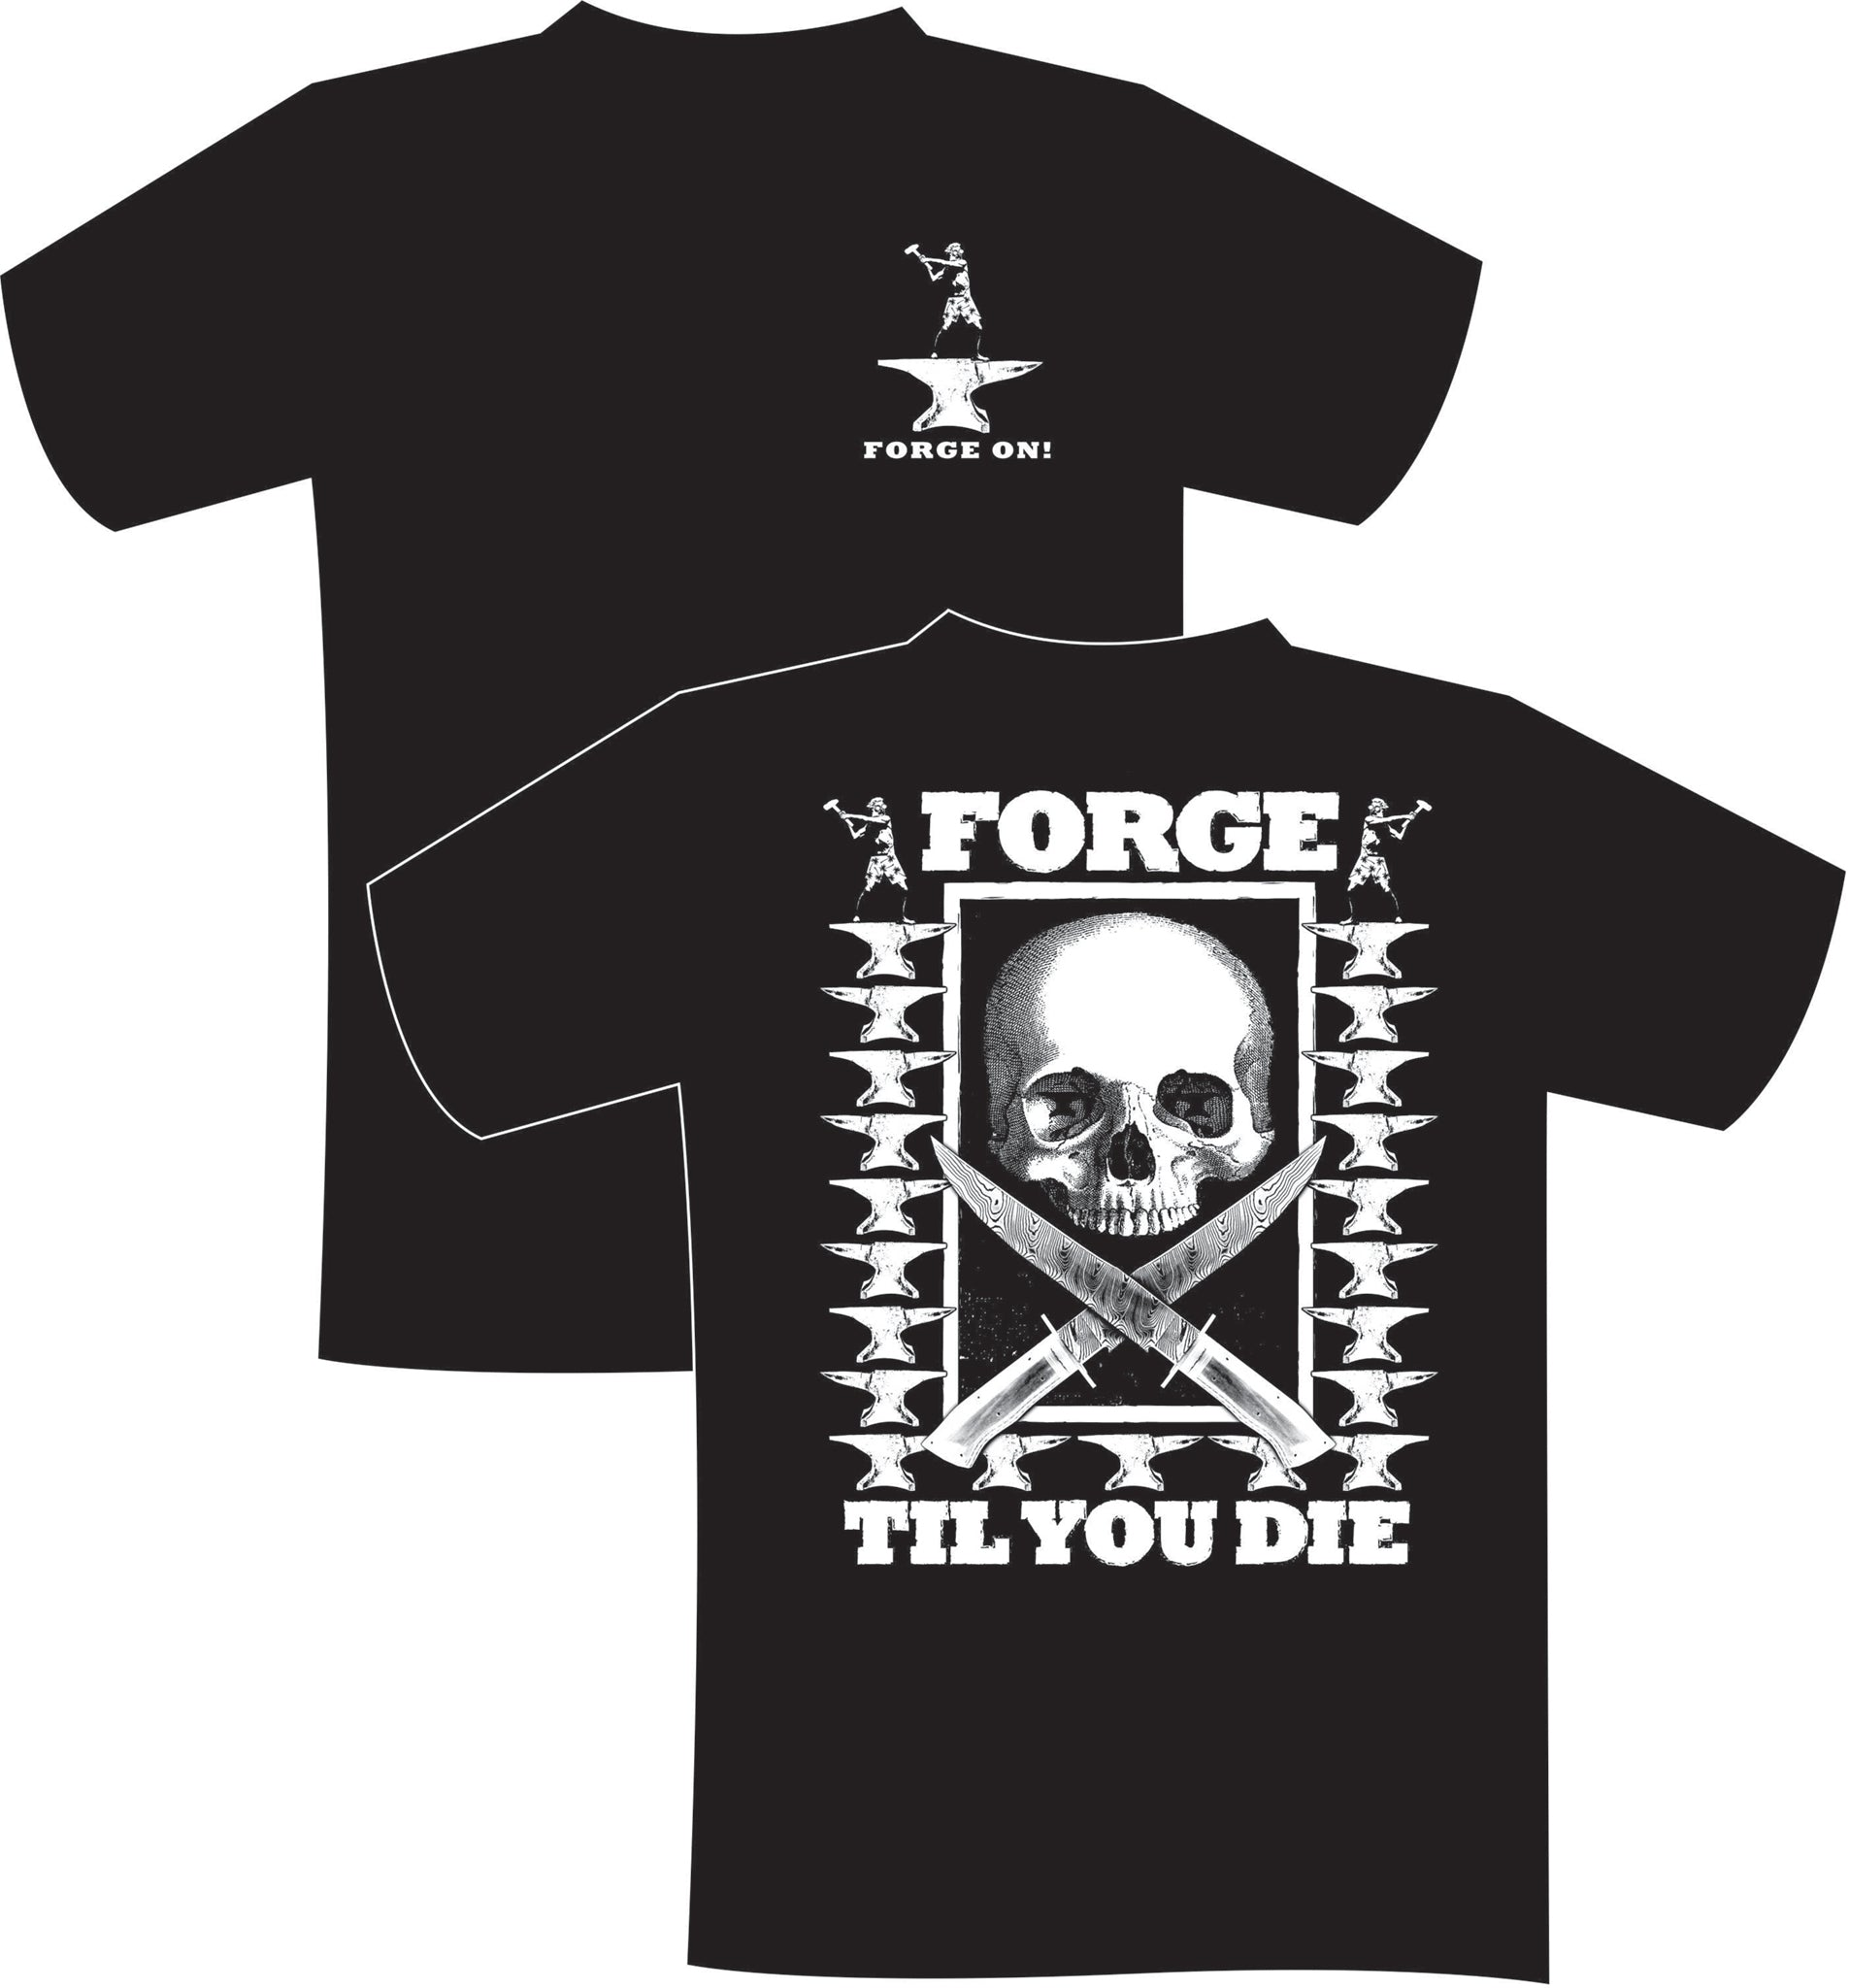 Forge On! T-shirt